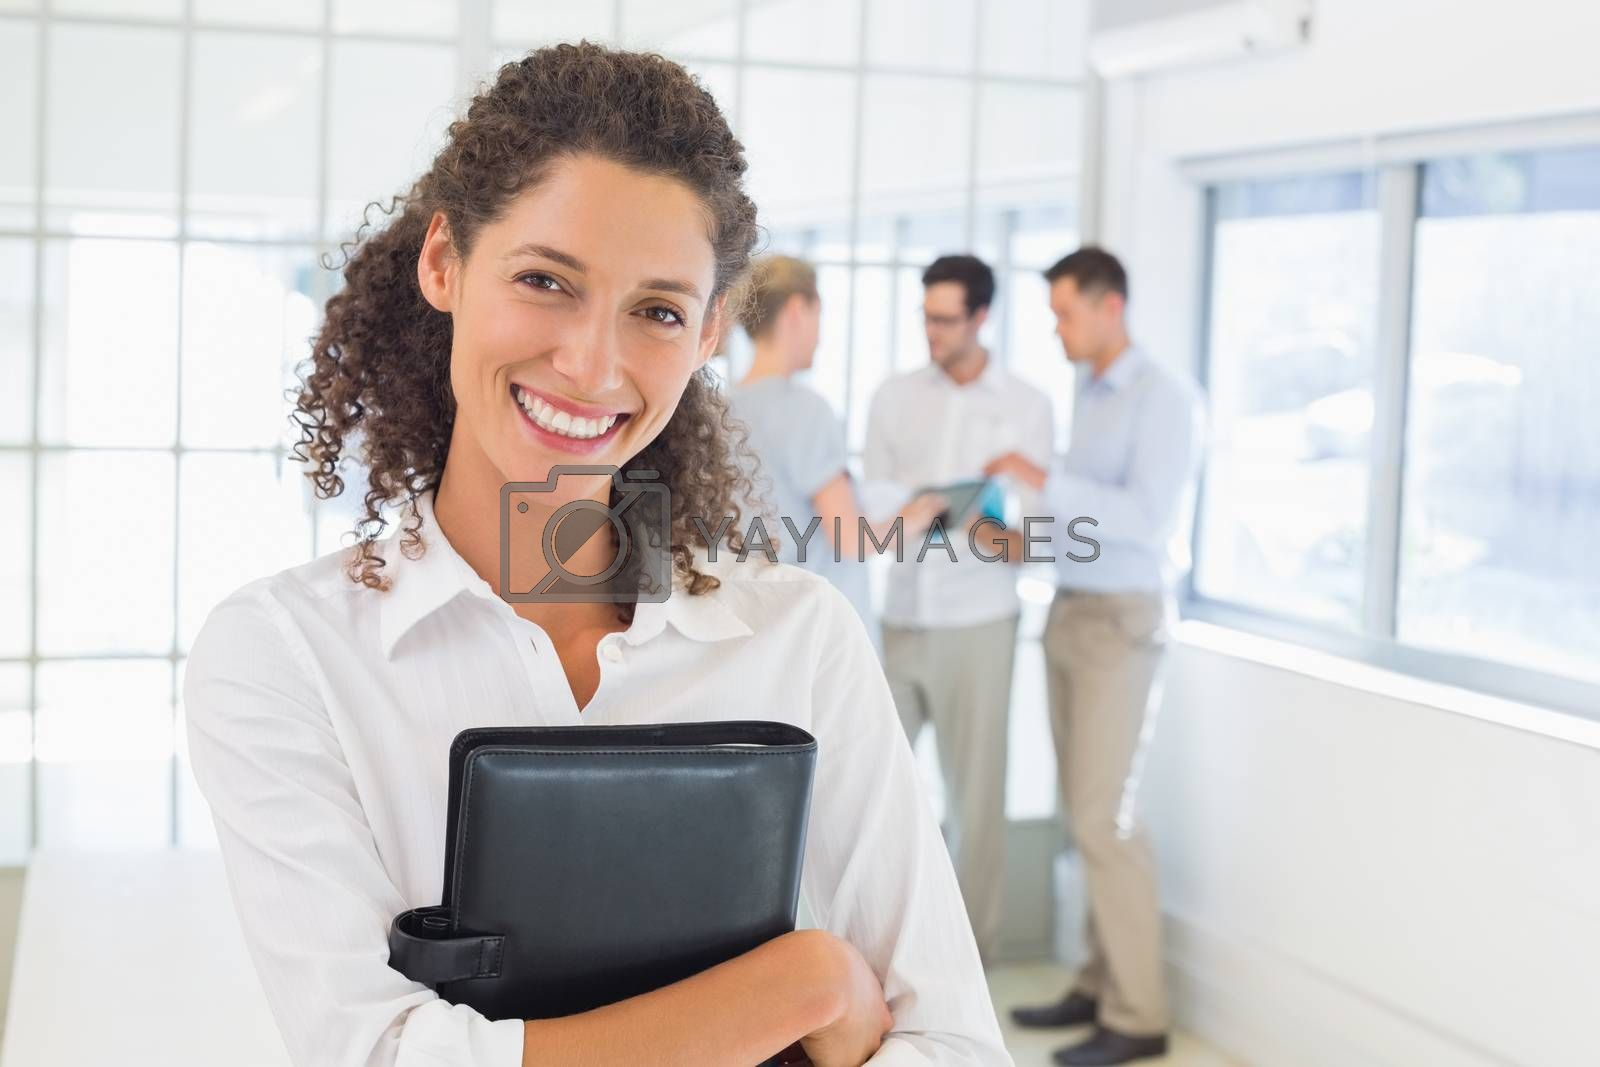 Royalty free image of Casual businesswoman smiling at camera holding diary by Wavebreakmedia